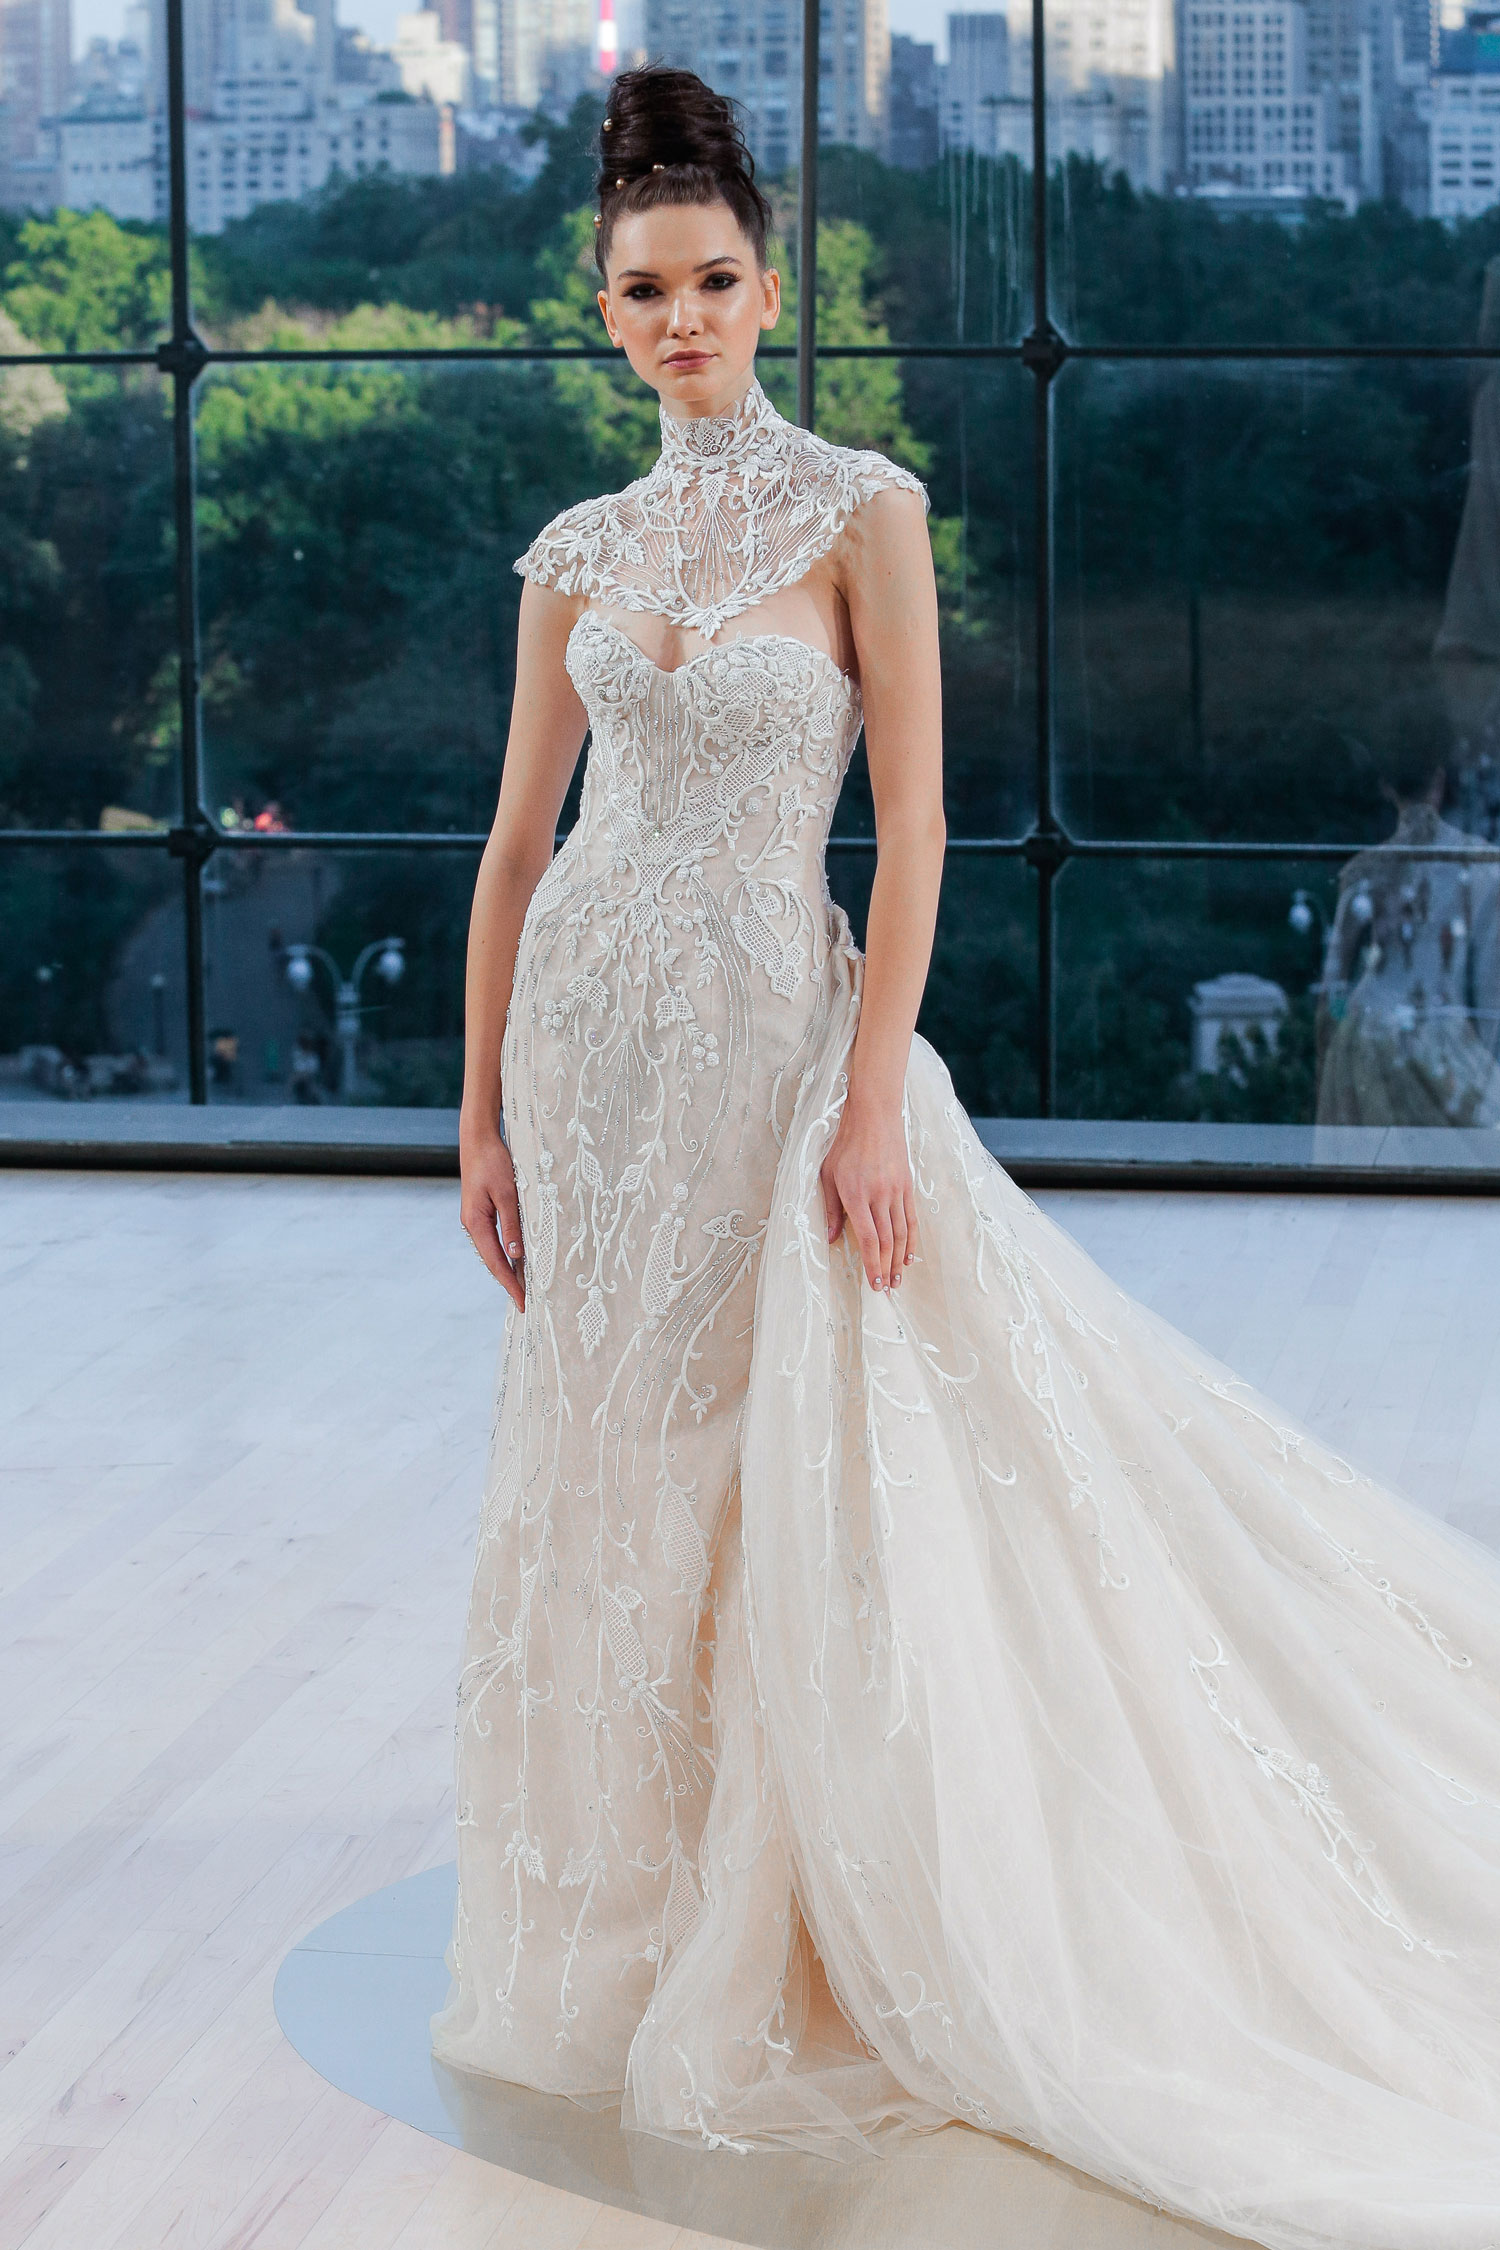 carnegie ines di santo wedding dress sheath with intricate embroidery and orverskirt